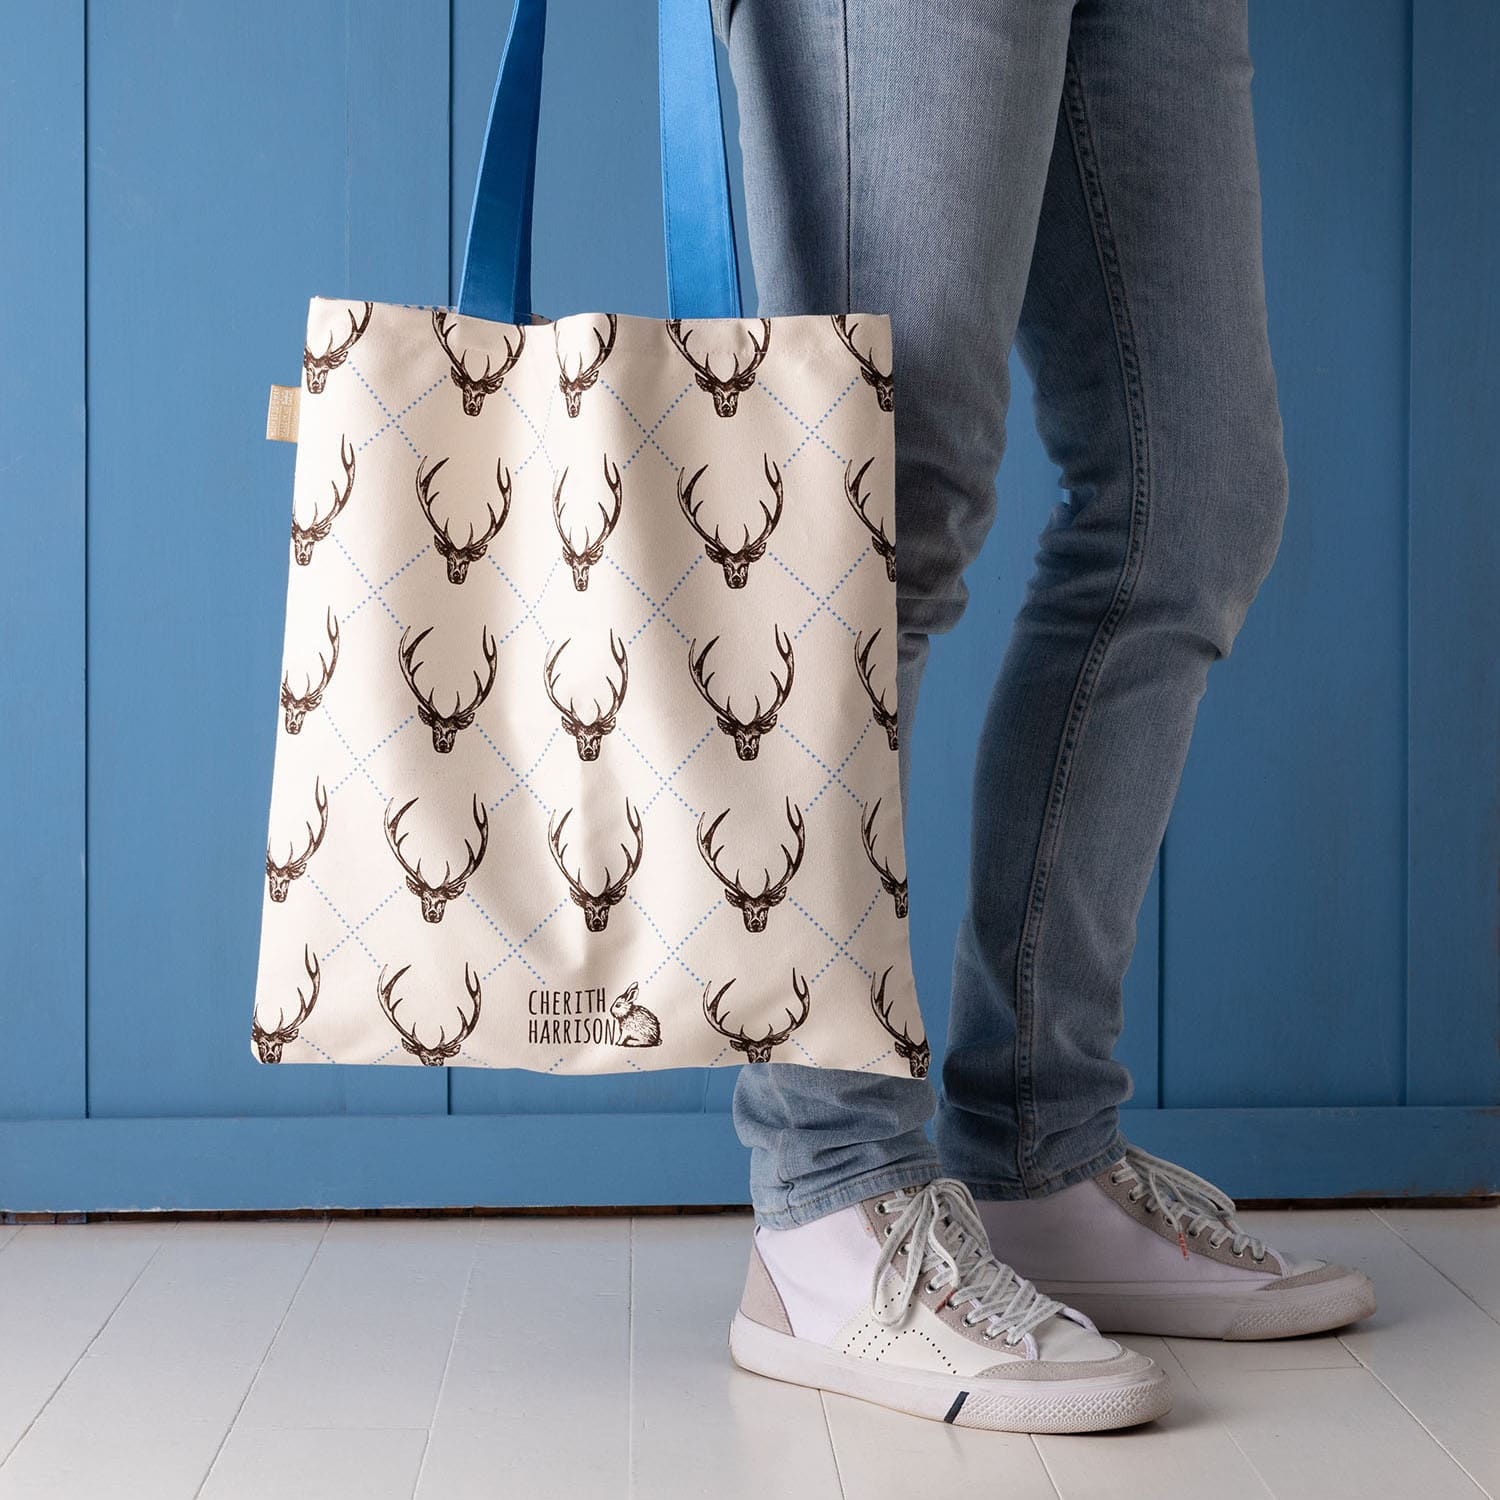 stag canvas shopper bag by Cherith Harrison